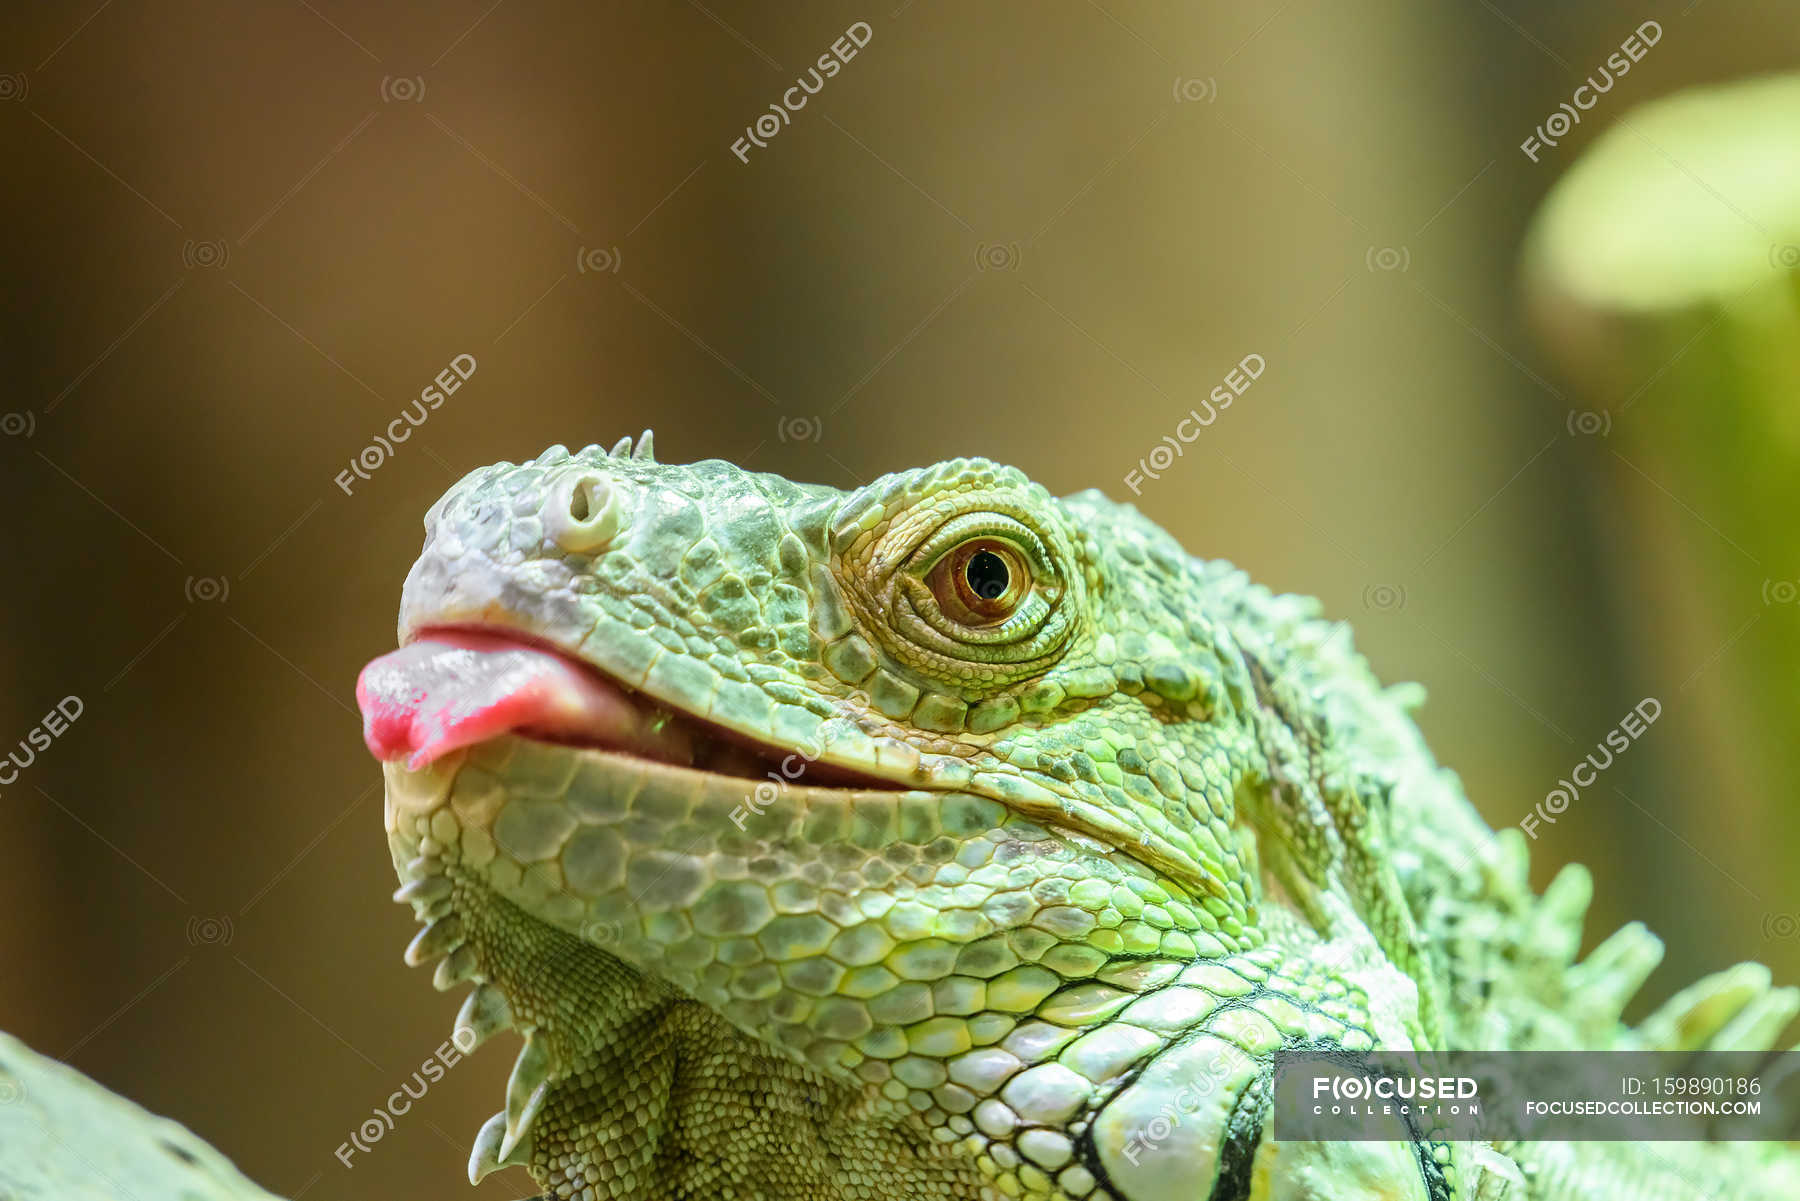 Wild iguana in nature — Stock Photo | #159890186